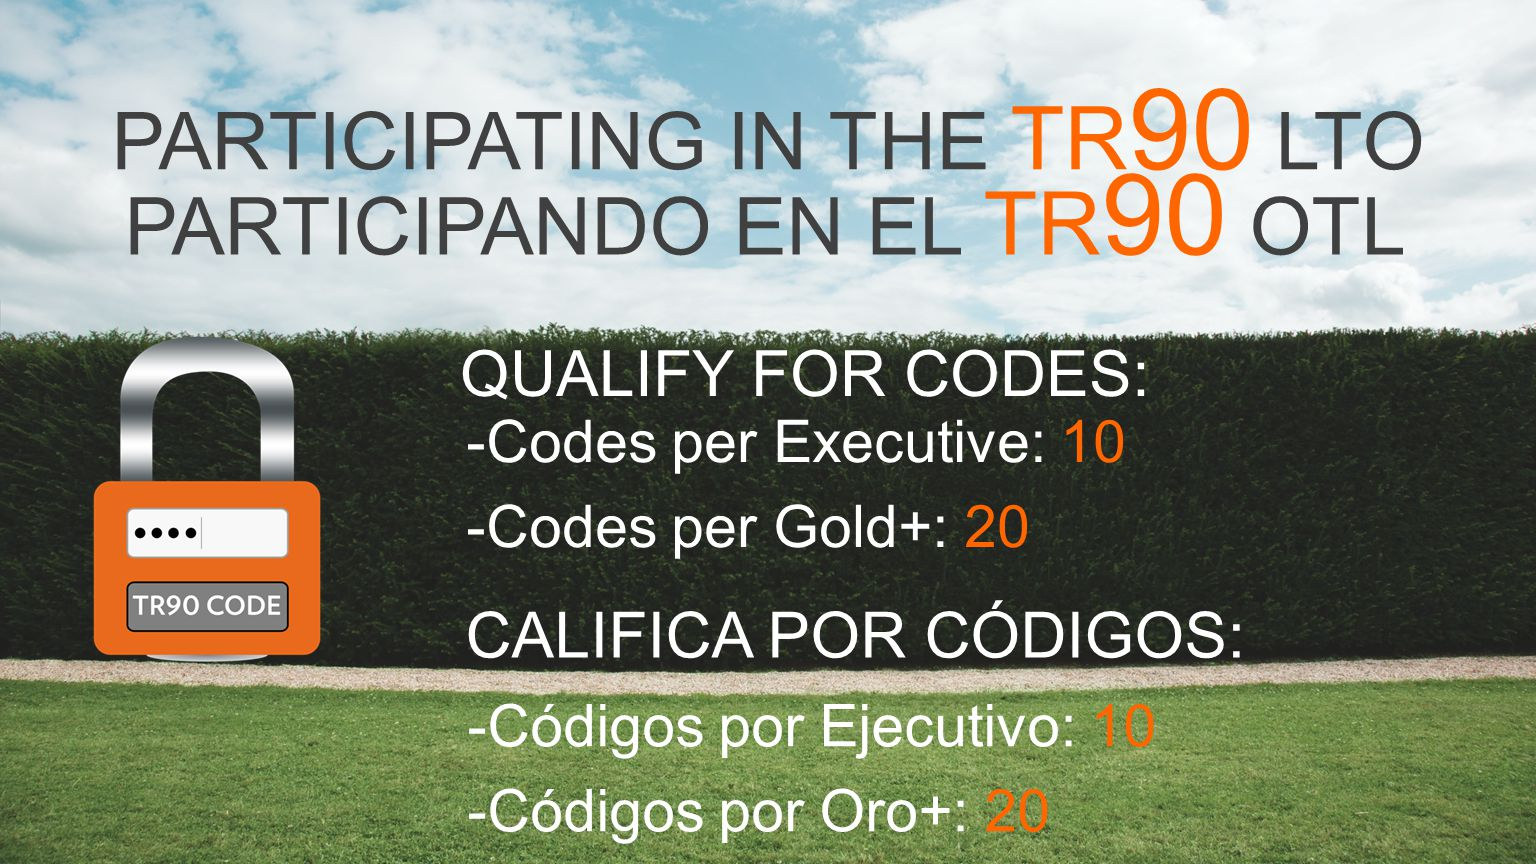 -Codes per Executive: 10 -Codes per Gold+: 20 PARTICIPATING IN THE TR 90 LTO QUALIFY FOR CODES: PARTICIPANDO EN EL TR 90 OTL CALIFICA POR CÓDIGOS: -Códigos por Ejecutivo: 10 -Códigos por Oro+: 20